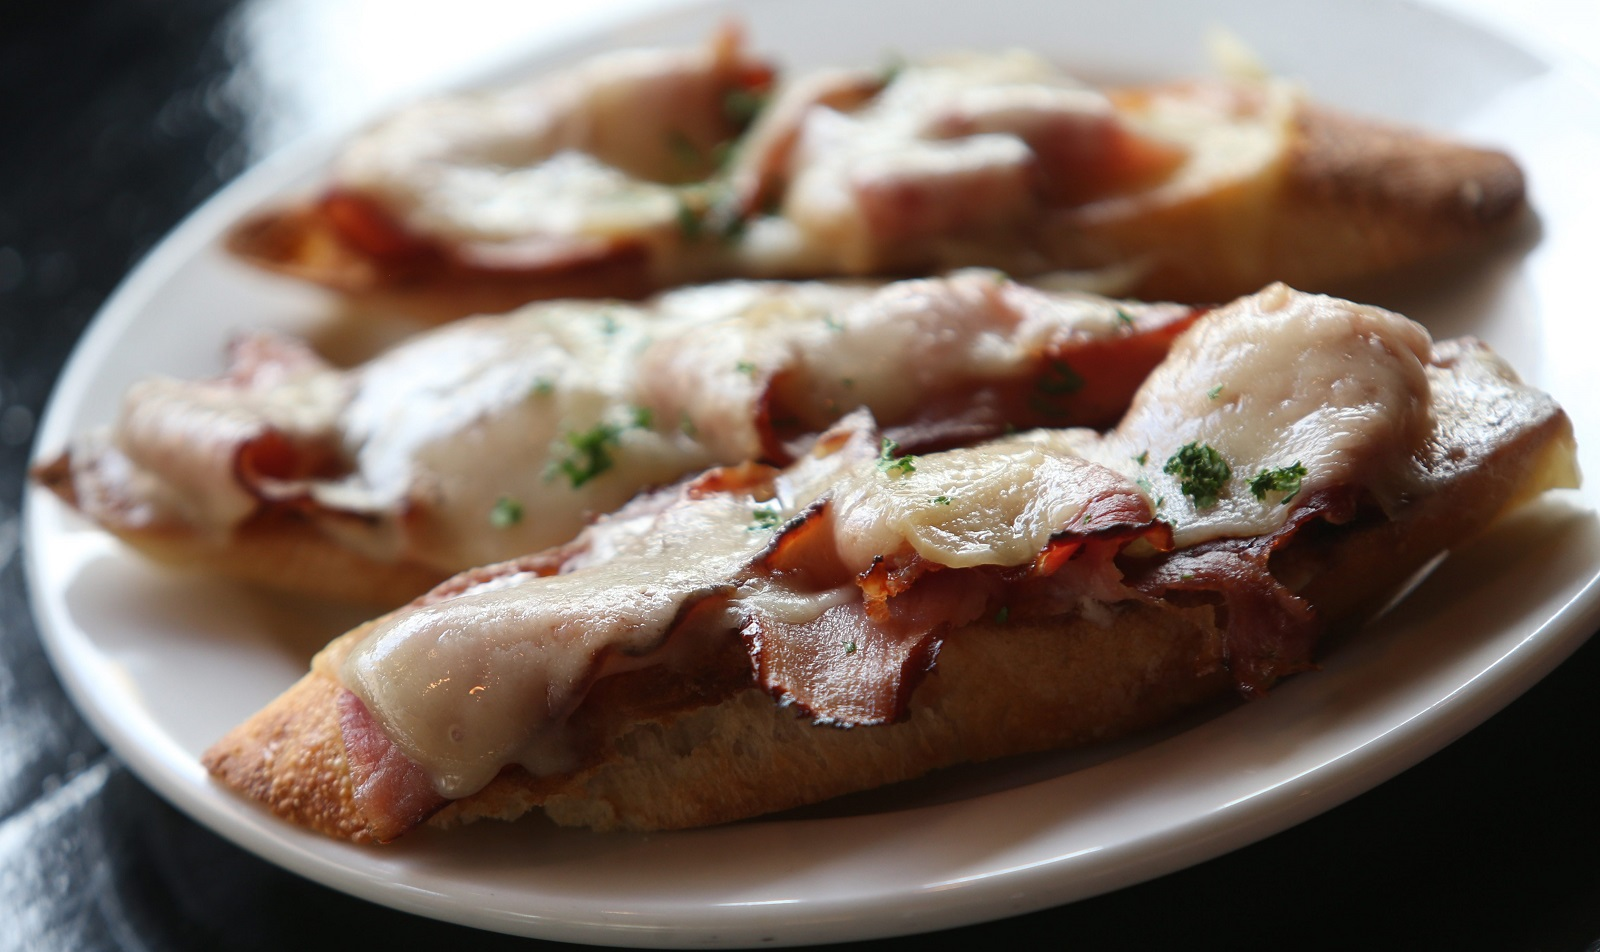 Raclettes' croque monsieur comes with toasted ham and gruyere. (Sharon Cantillon/Buffalo News)